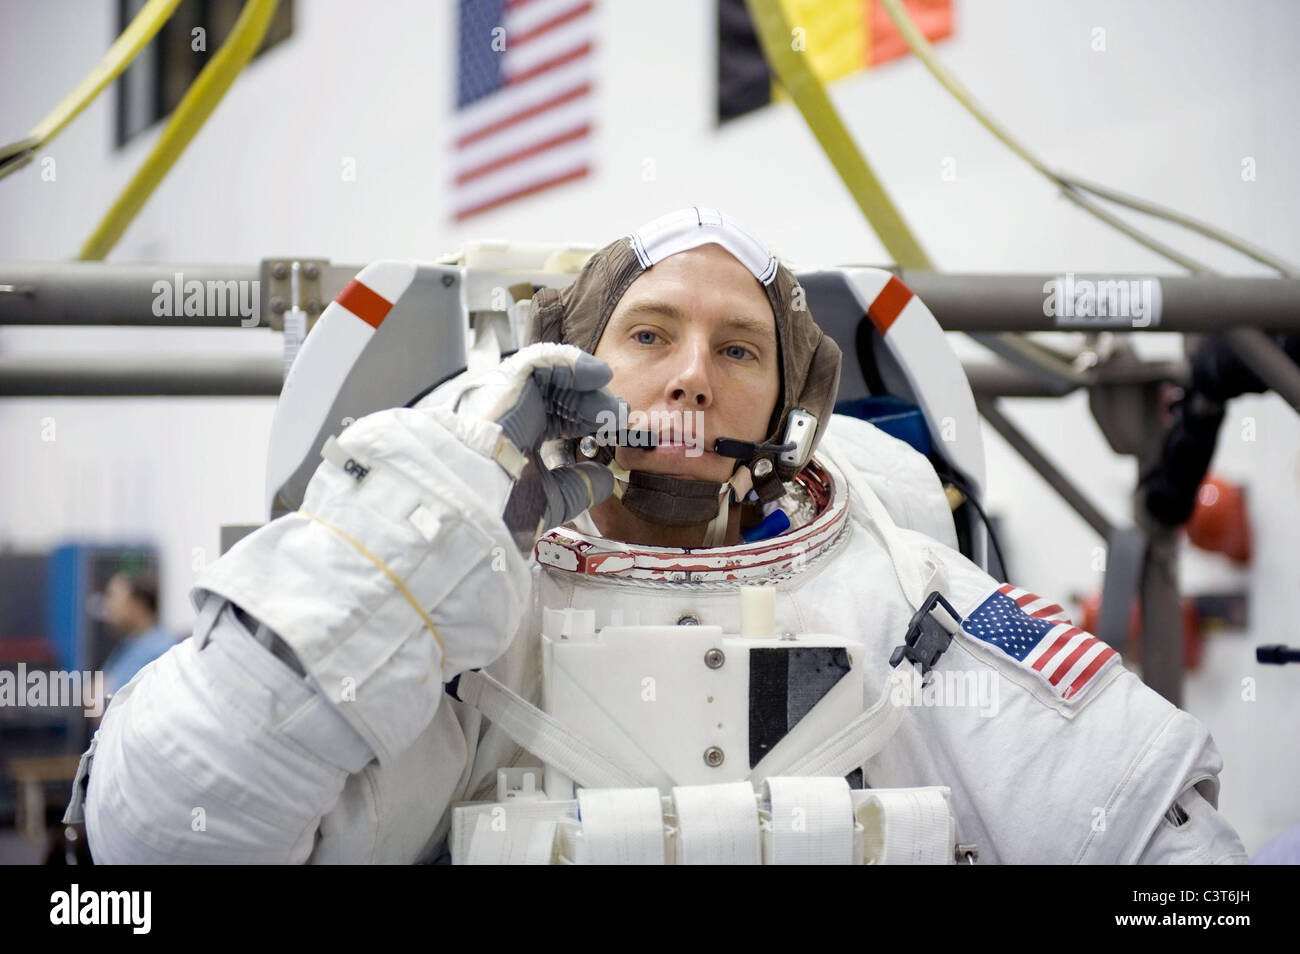 Suited for Training NASA astronaut Andrew Feustel, STS-134 mission specialist, is attired in a training version - Stock Image